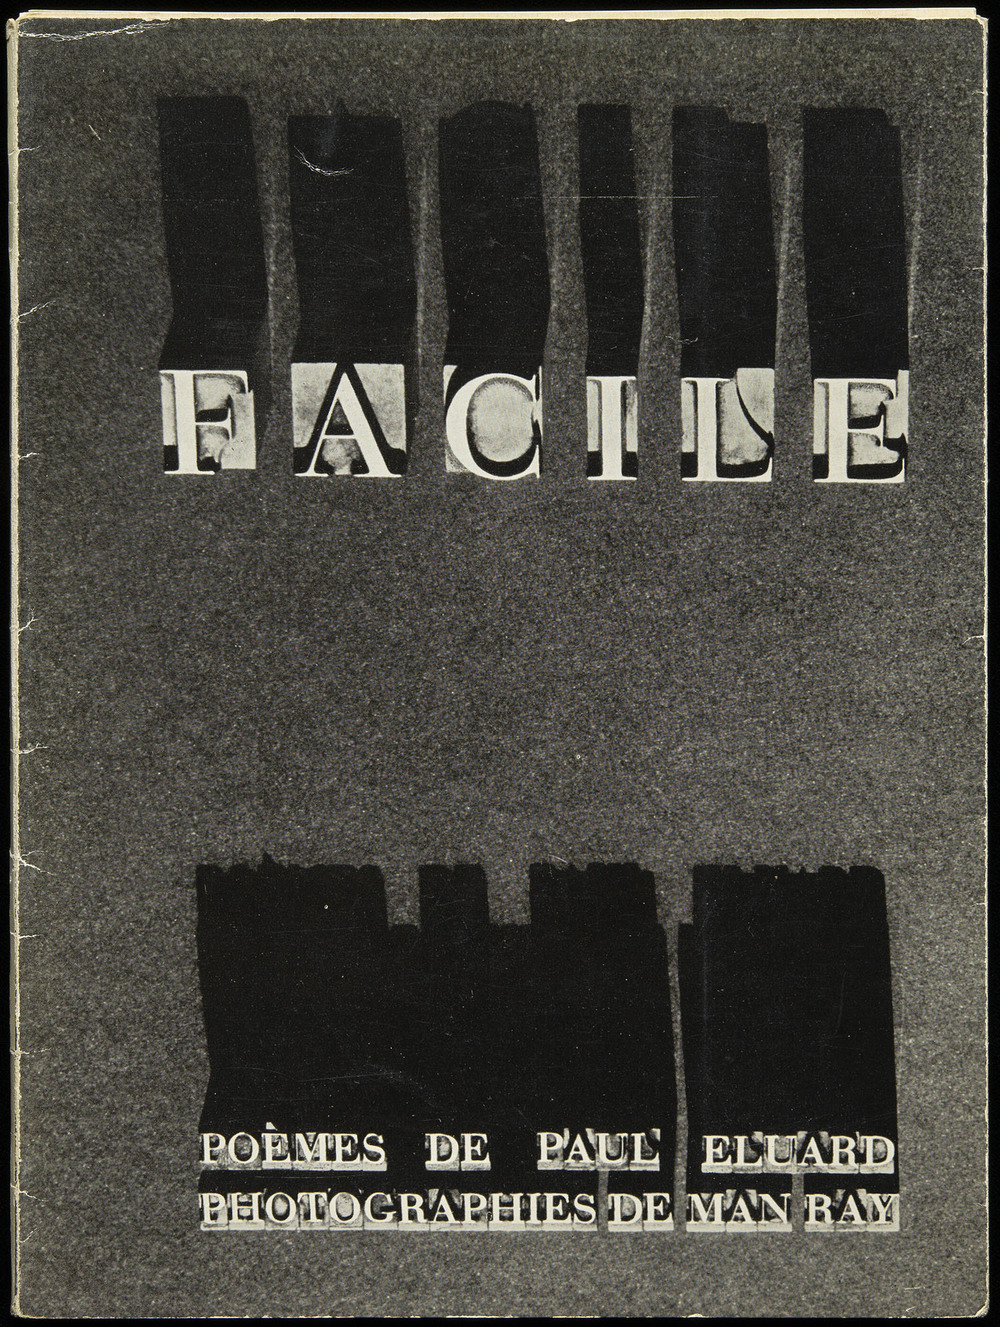 Man Ray,  Facile  by Paul Eluard, Editions GLM, Paris 1935, 18.3 x 24.5